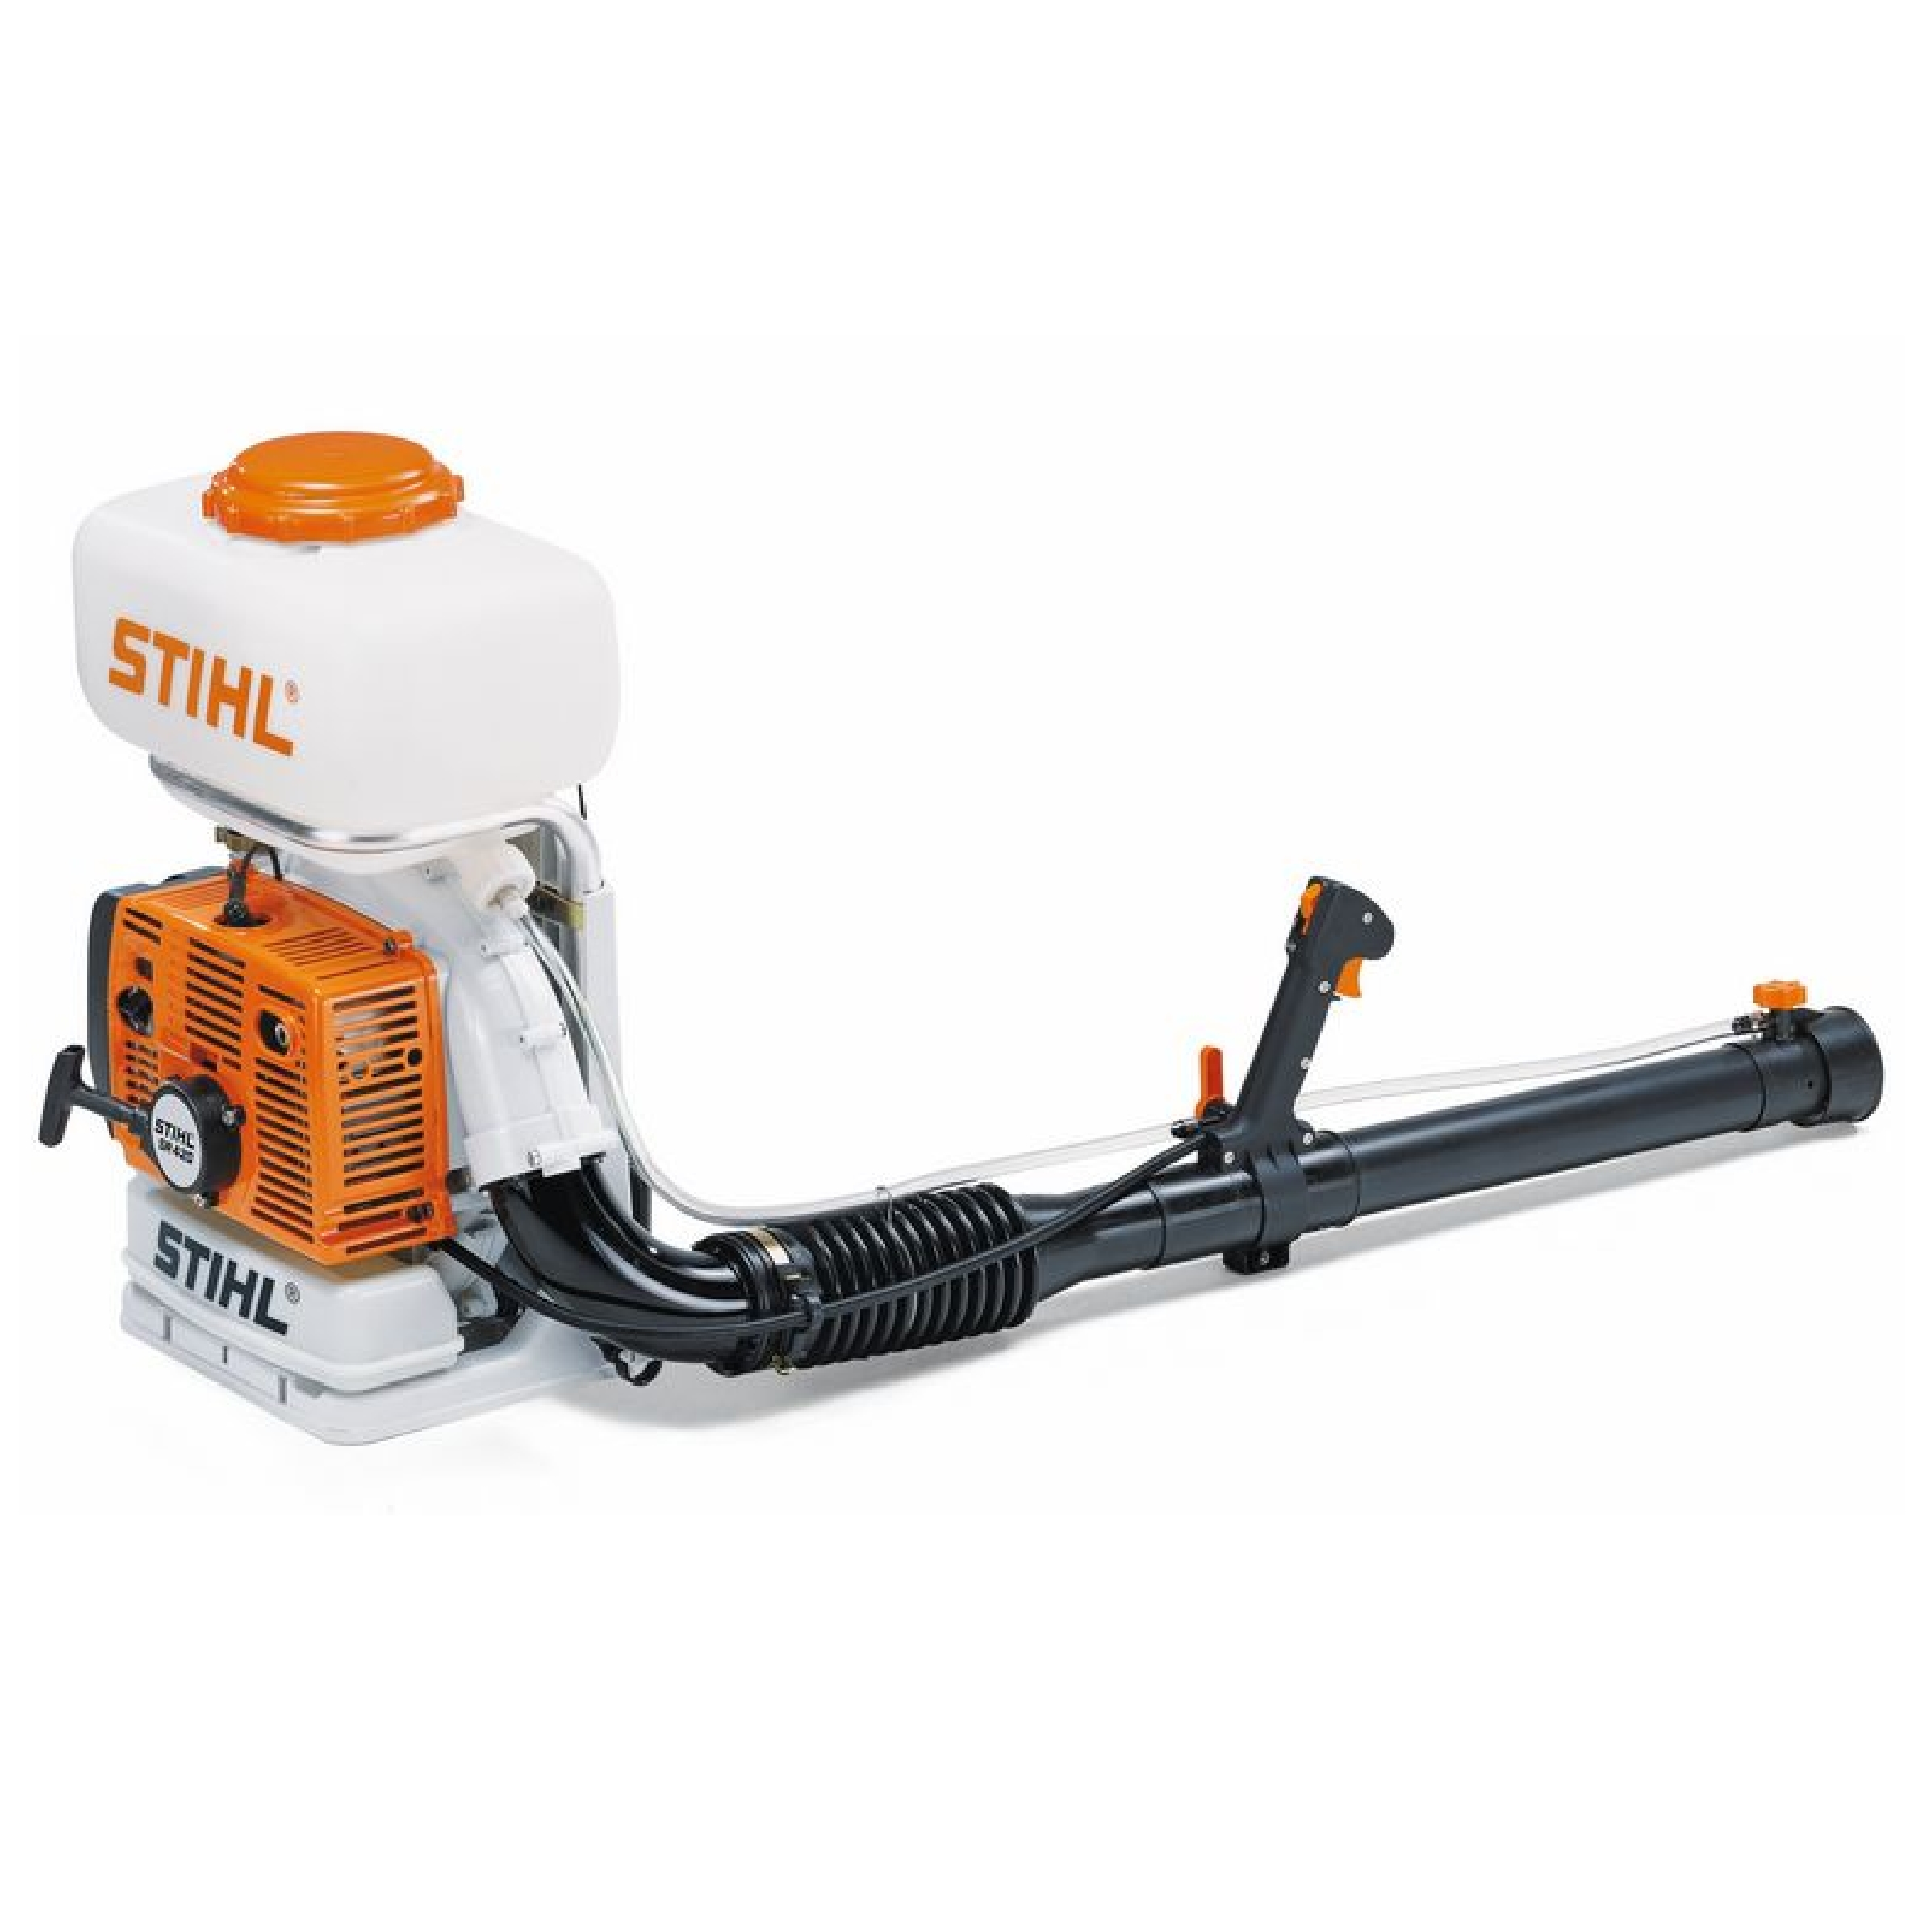 STIHL SR420 Mist Blower / Blower (Backpack Professional) 56cc